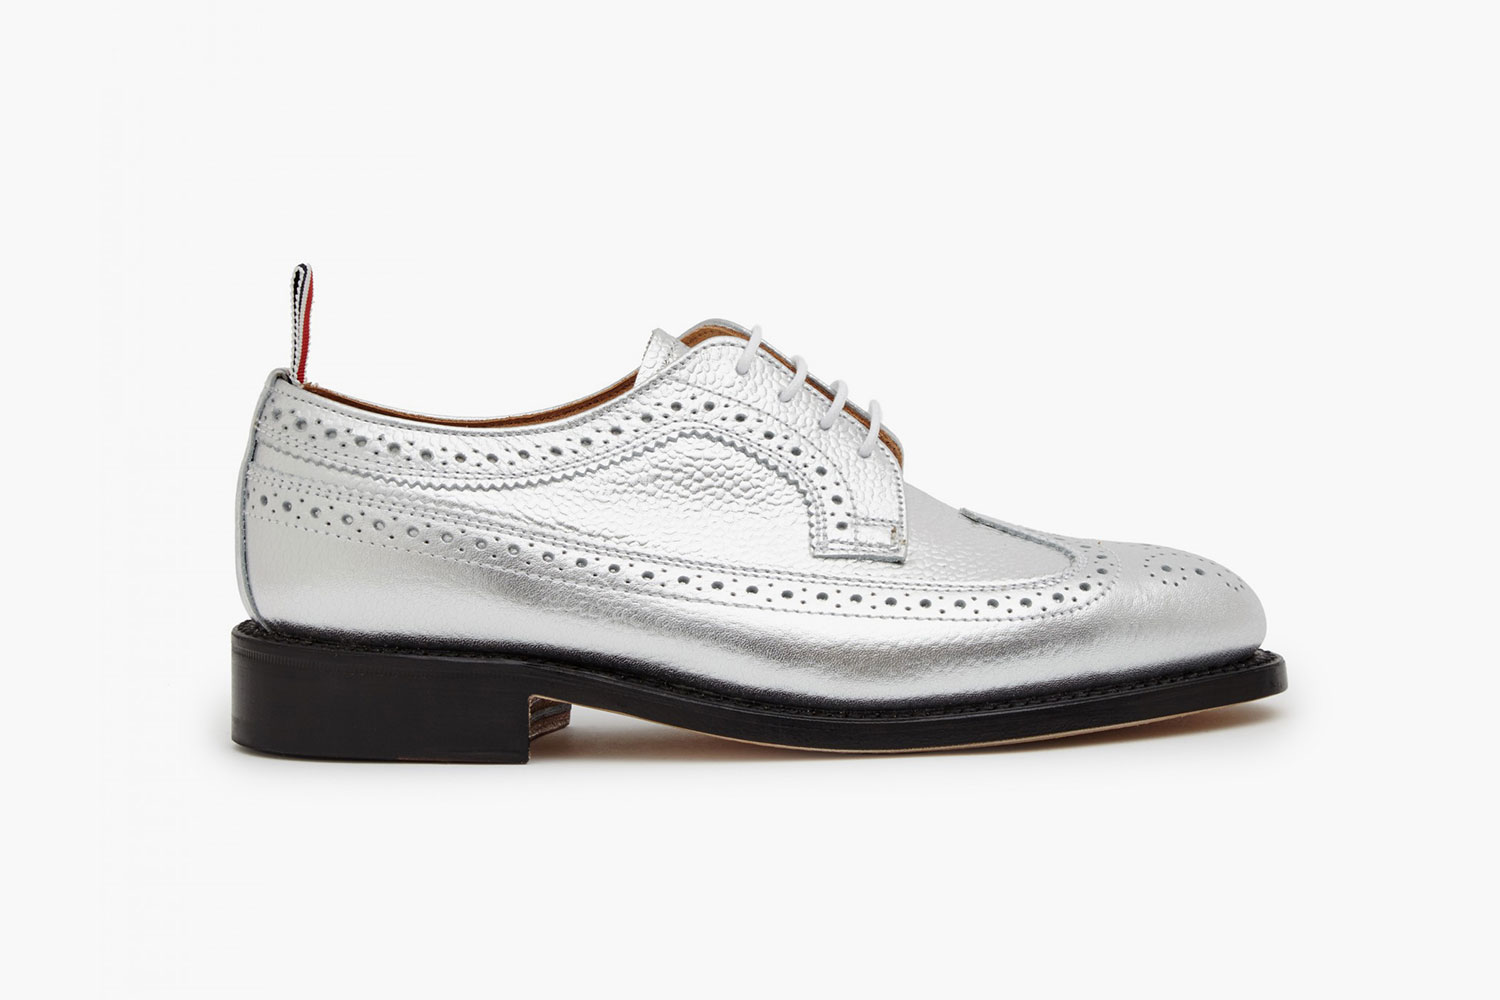 Thom Browne Special Collection for Dover Street Market